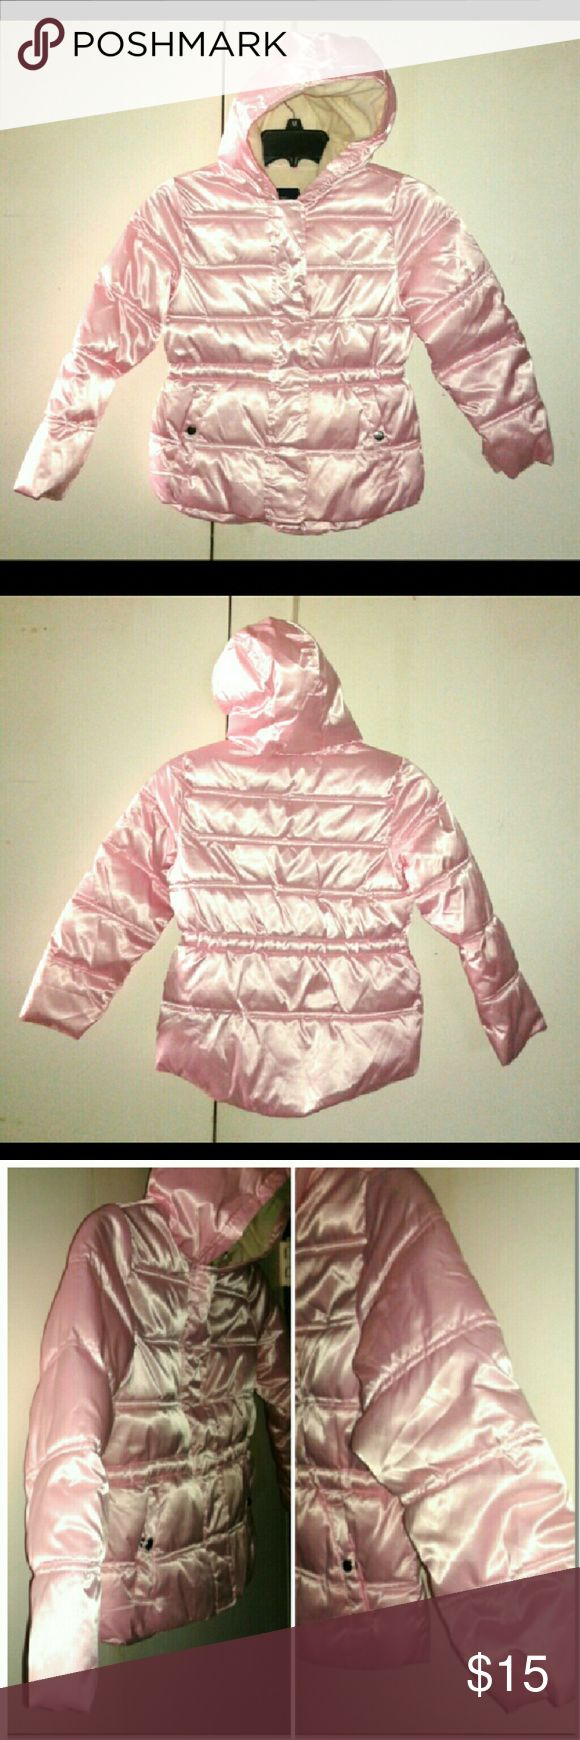 FADED GLORY PUFFER JACKET LITTLE GIRL'S SIZE S/6X BUNDLE 2 OR MORE & SAVE 30% UPON CHECKOUT GENTLY USED WELL STORED IN GREAT FUNCTIONAL CONDITION I HAVE TONS OF ITEMS SO DETAILS ARE IN THE ?'s & COMMENT SECTION TO AVOID Cx PLS ASK ME TO DOUBLE CHECK B4 PURCHASING I SELL ON OTHER APPs & THE DAY CAN GET HECTIC? I ANSWER?'s 6:30AM-8:30PM PT WHN I'M NOT DRIVIN ?'s AFTER 8:30PM WILL BE ANSWERED NXT DAY THANKS FOR YOUR INQUIRY & HOPE Y'ALL HAVE A GREAT DAY  ;) Faded Glory Jackets & Coats Puffers